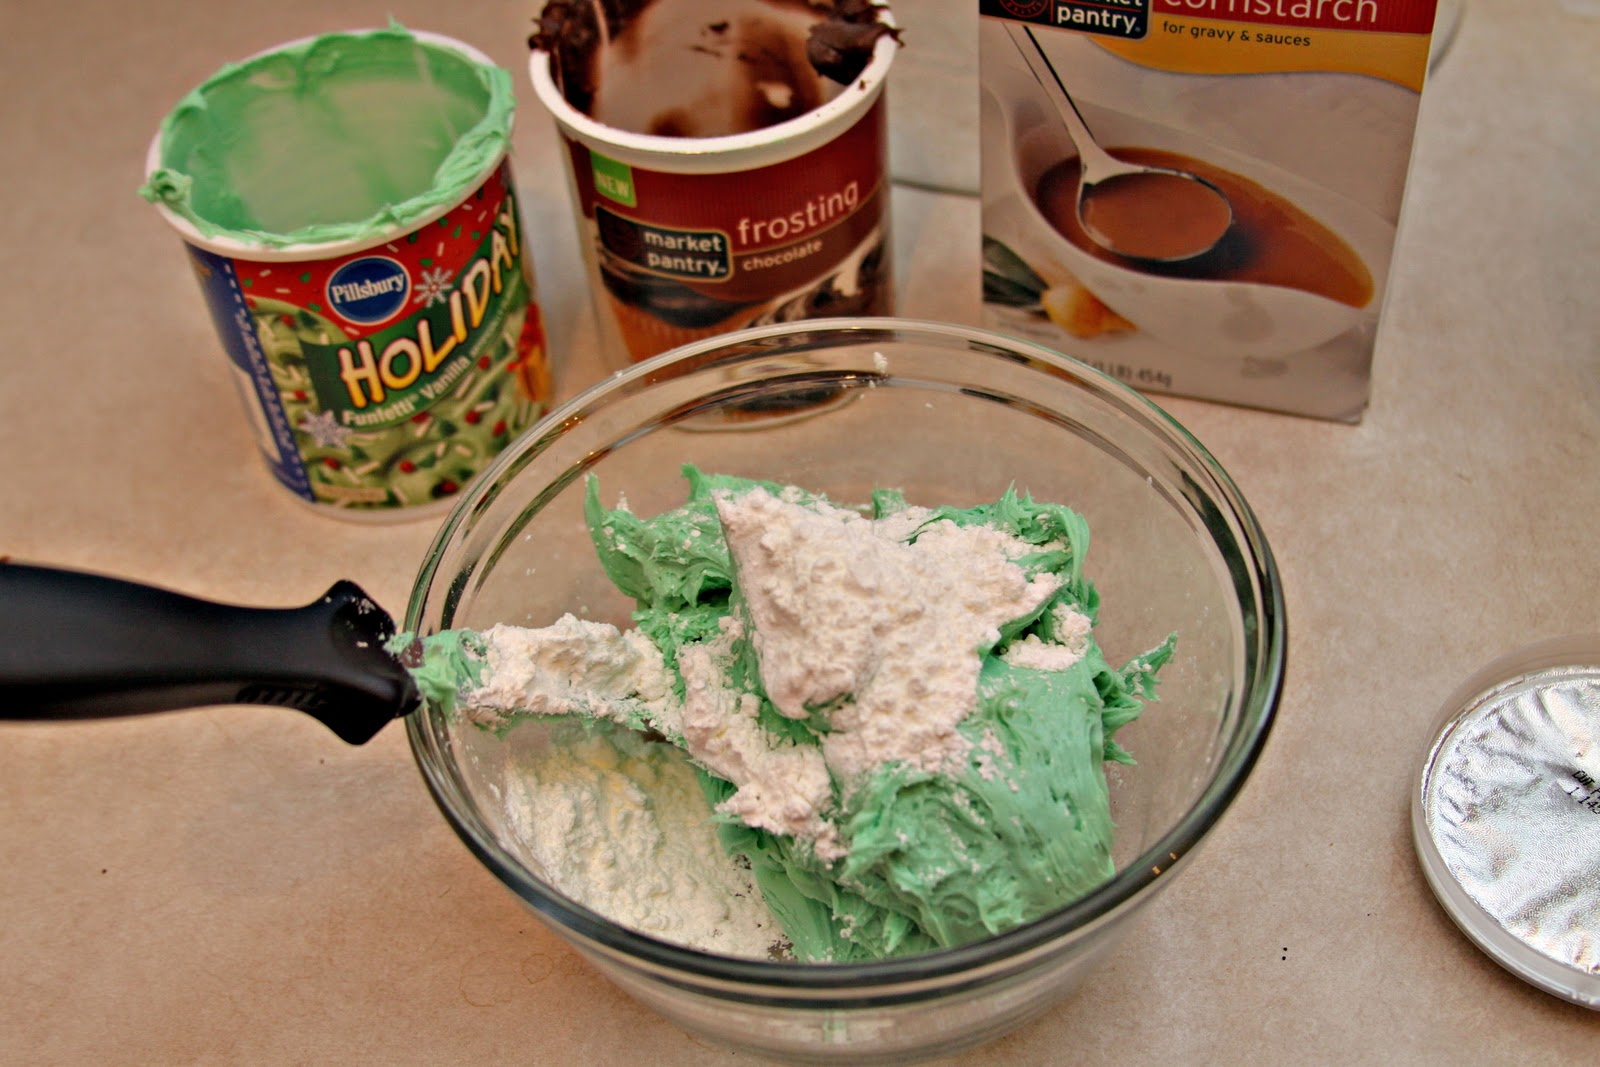 how to thicken icing with cornstarch